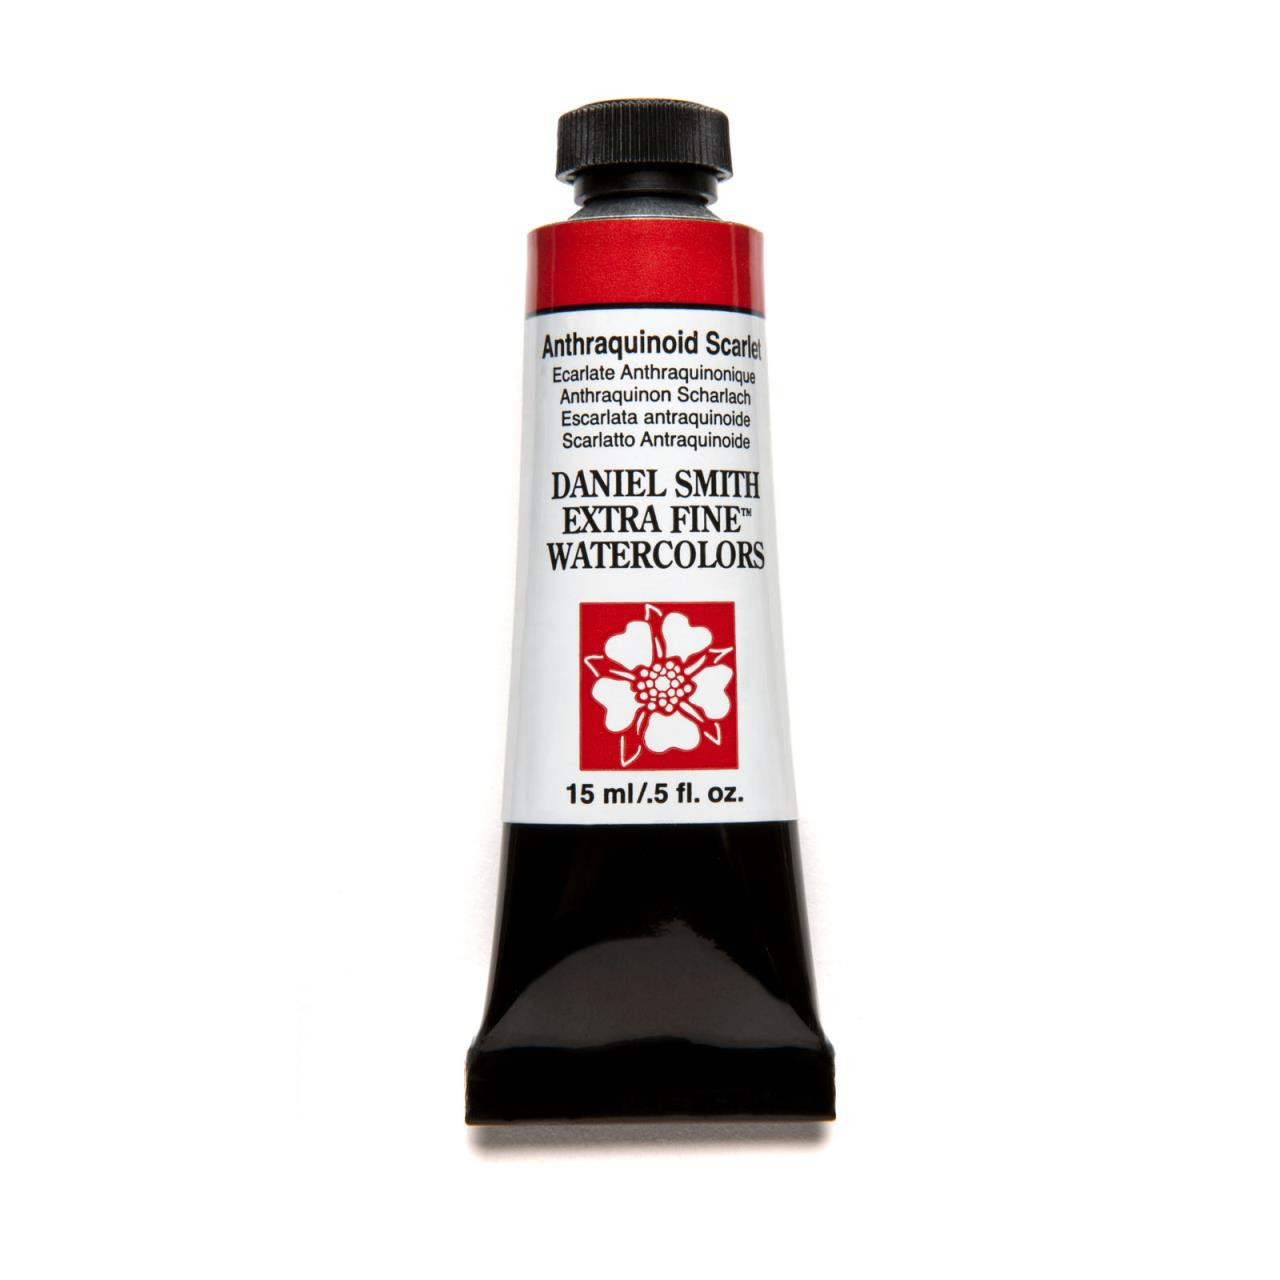 Anthraquinoid Scarlet, DANIEL SMITH Extra Fine Watercolors 15ml Tubes -